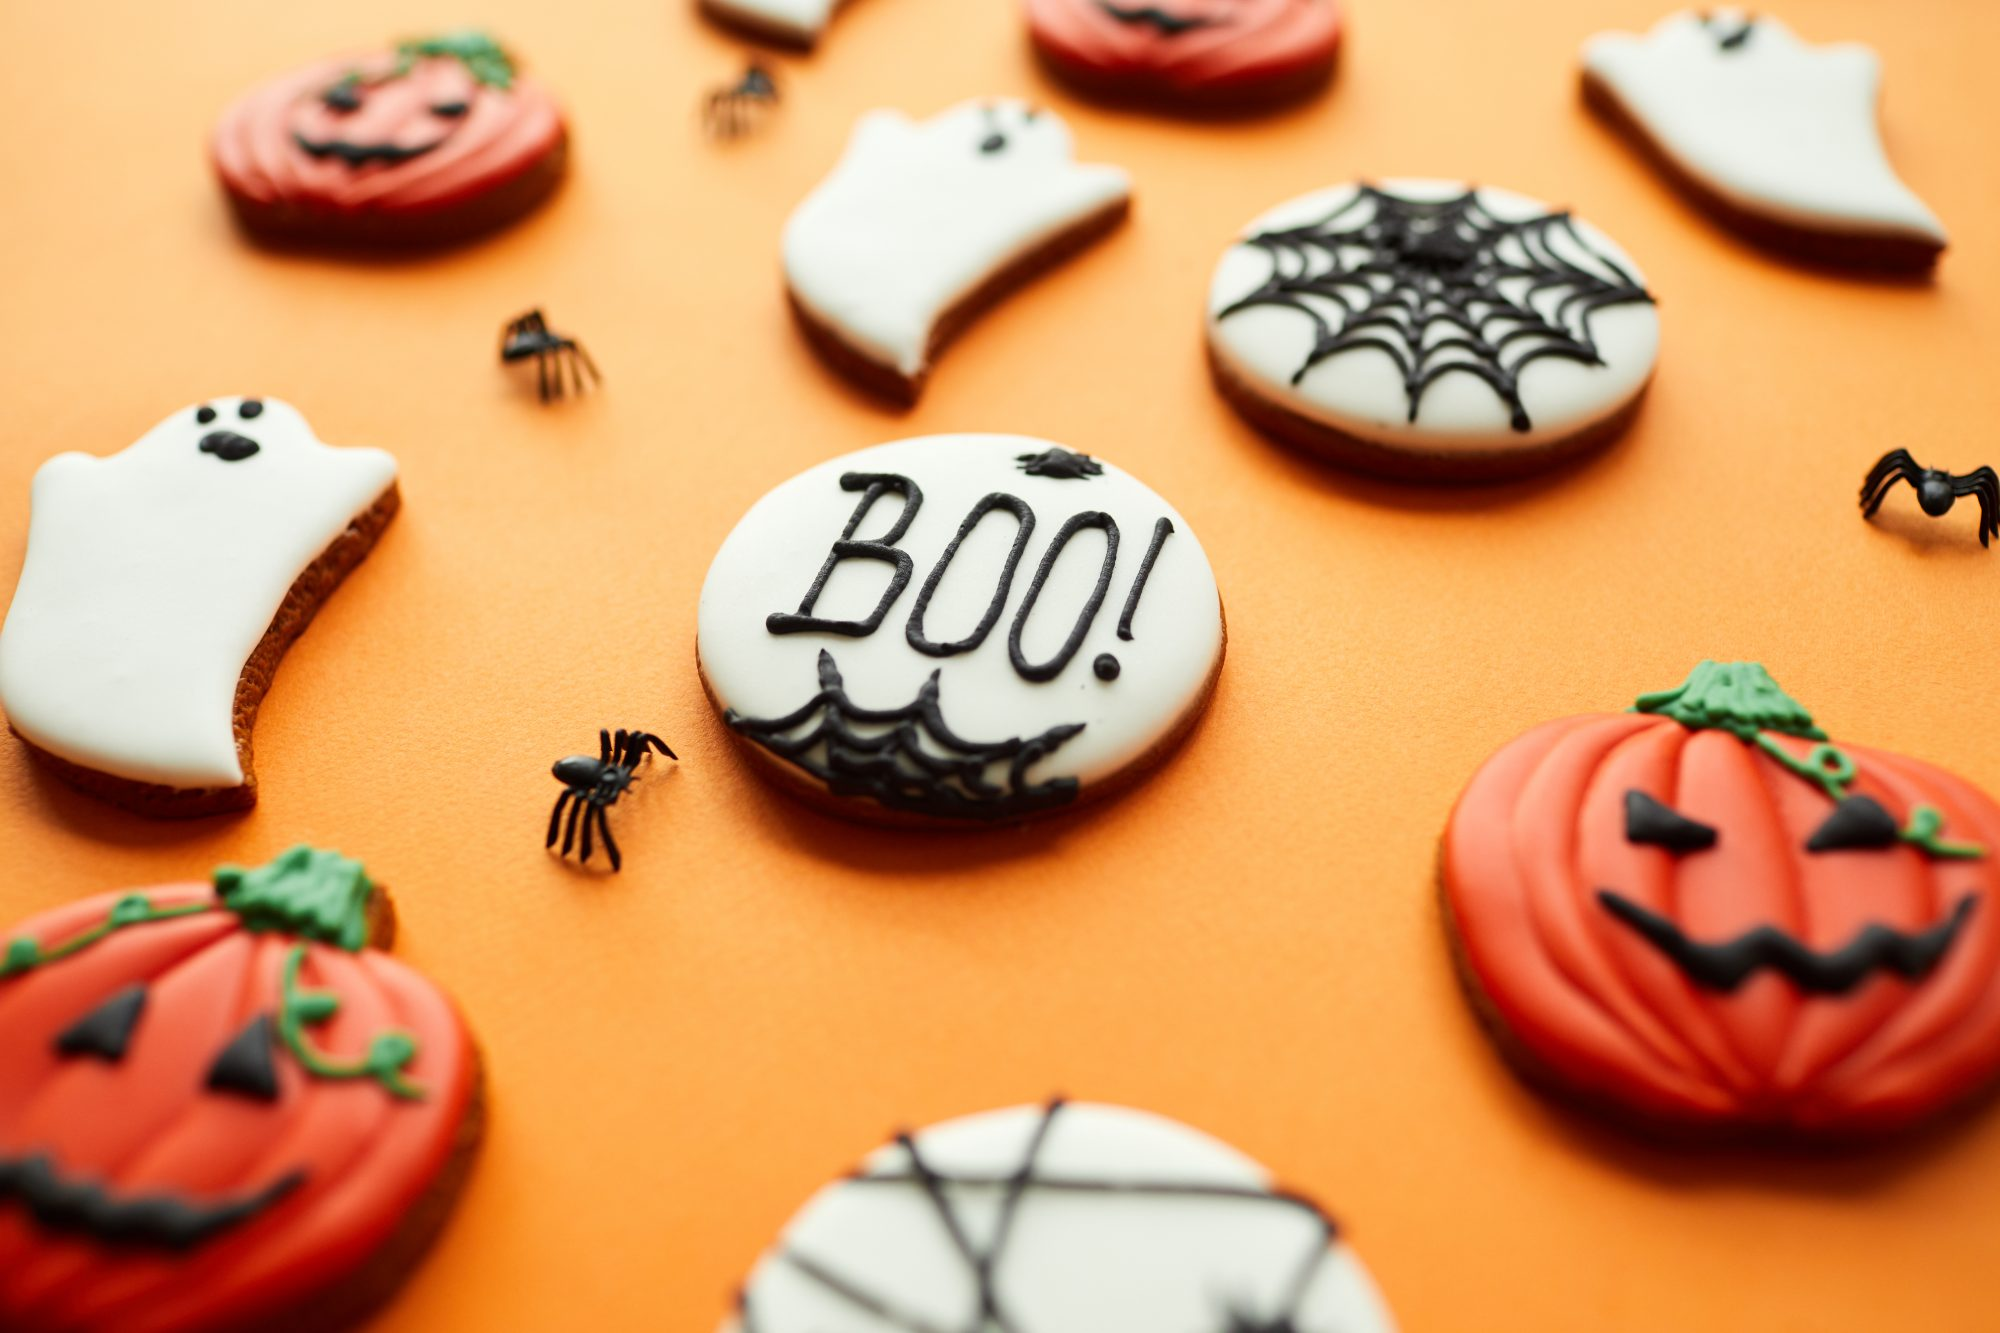 Halloween desserts and halloween treats - cakes, cookies, cupcakes, and more